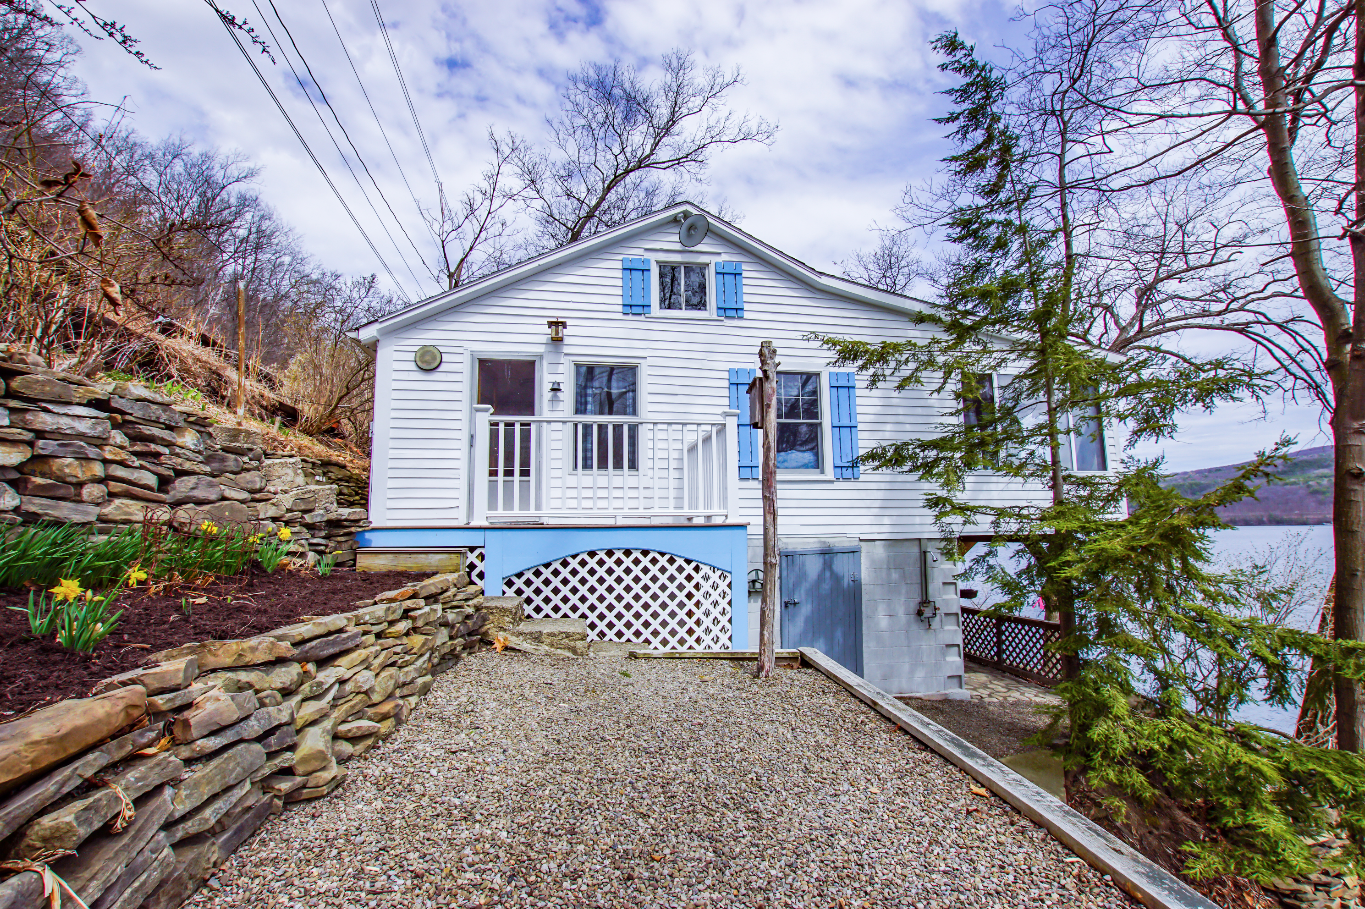 - Check out our first listing photos for this cute cottage located in Urbana on Keuka Lake.